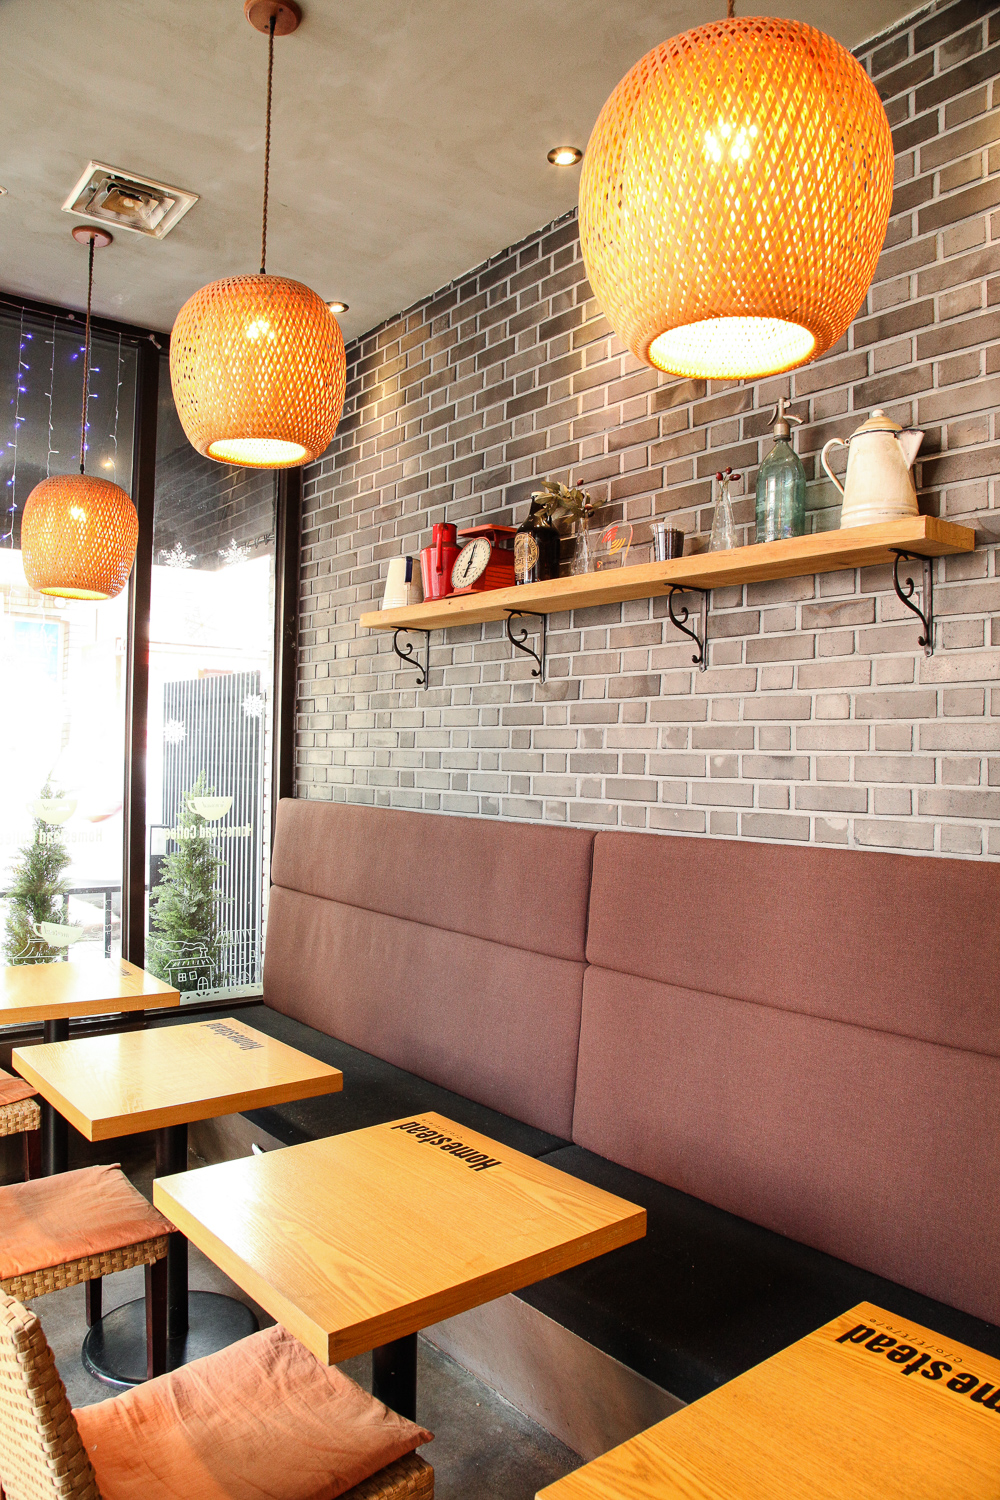 homestead coffee interior seating